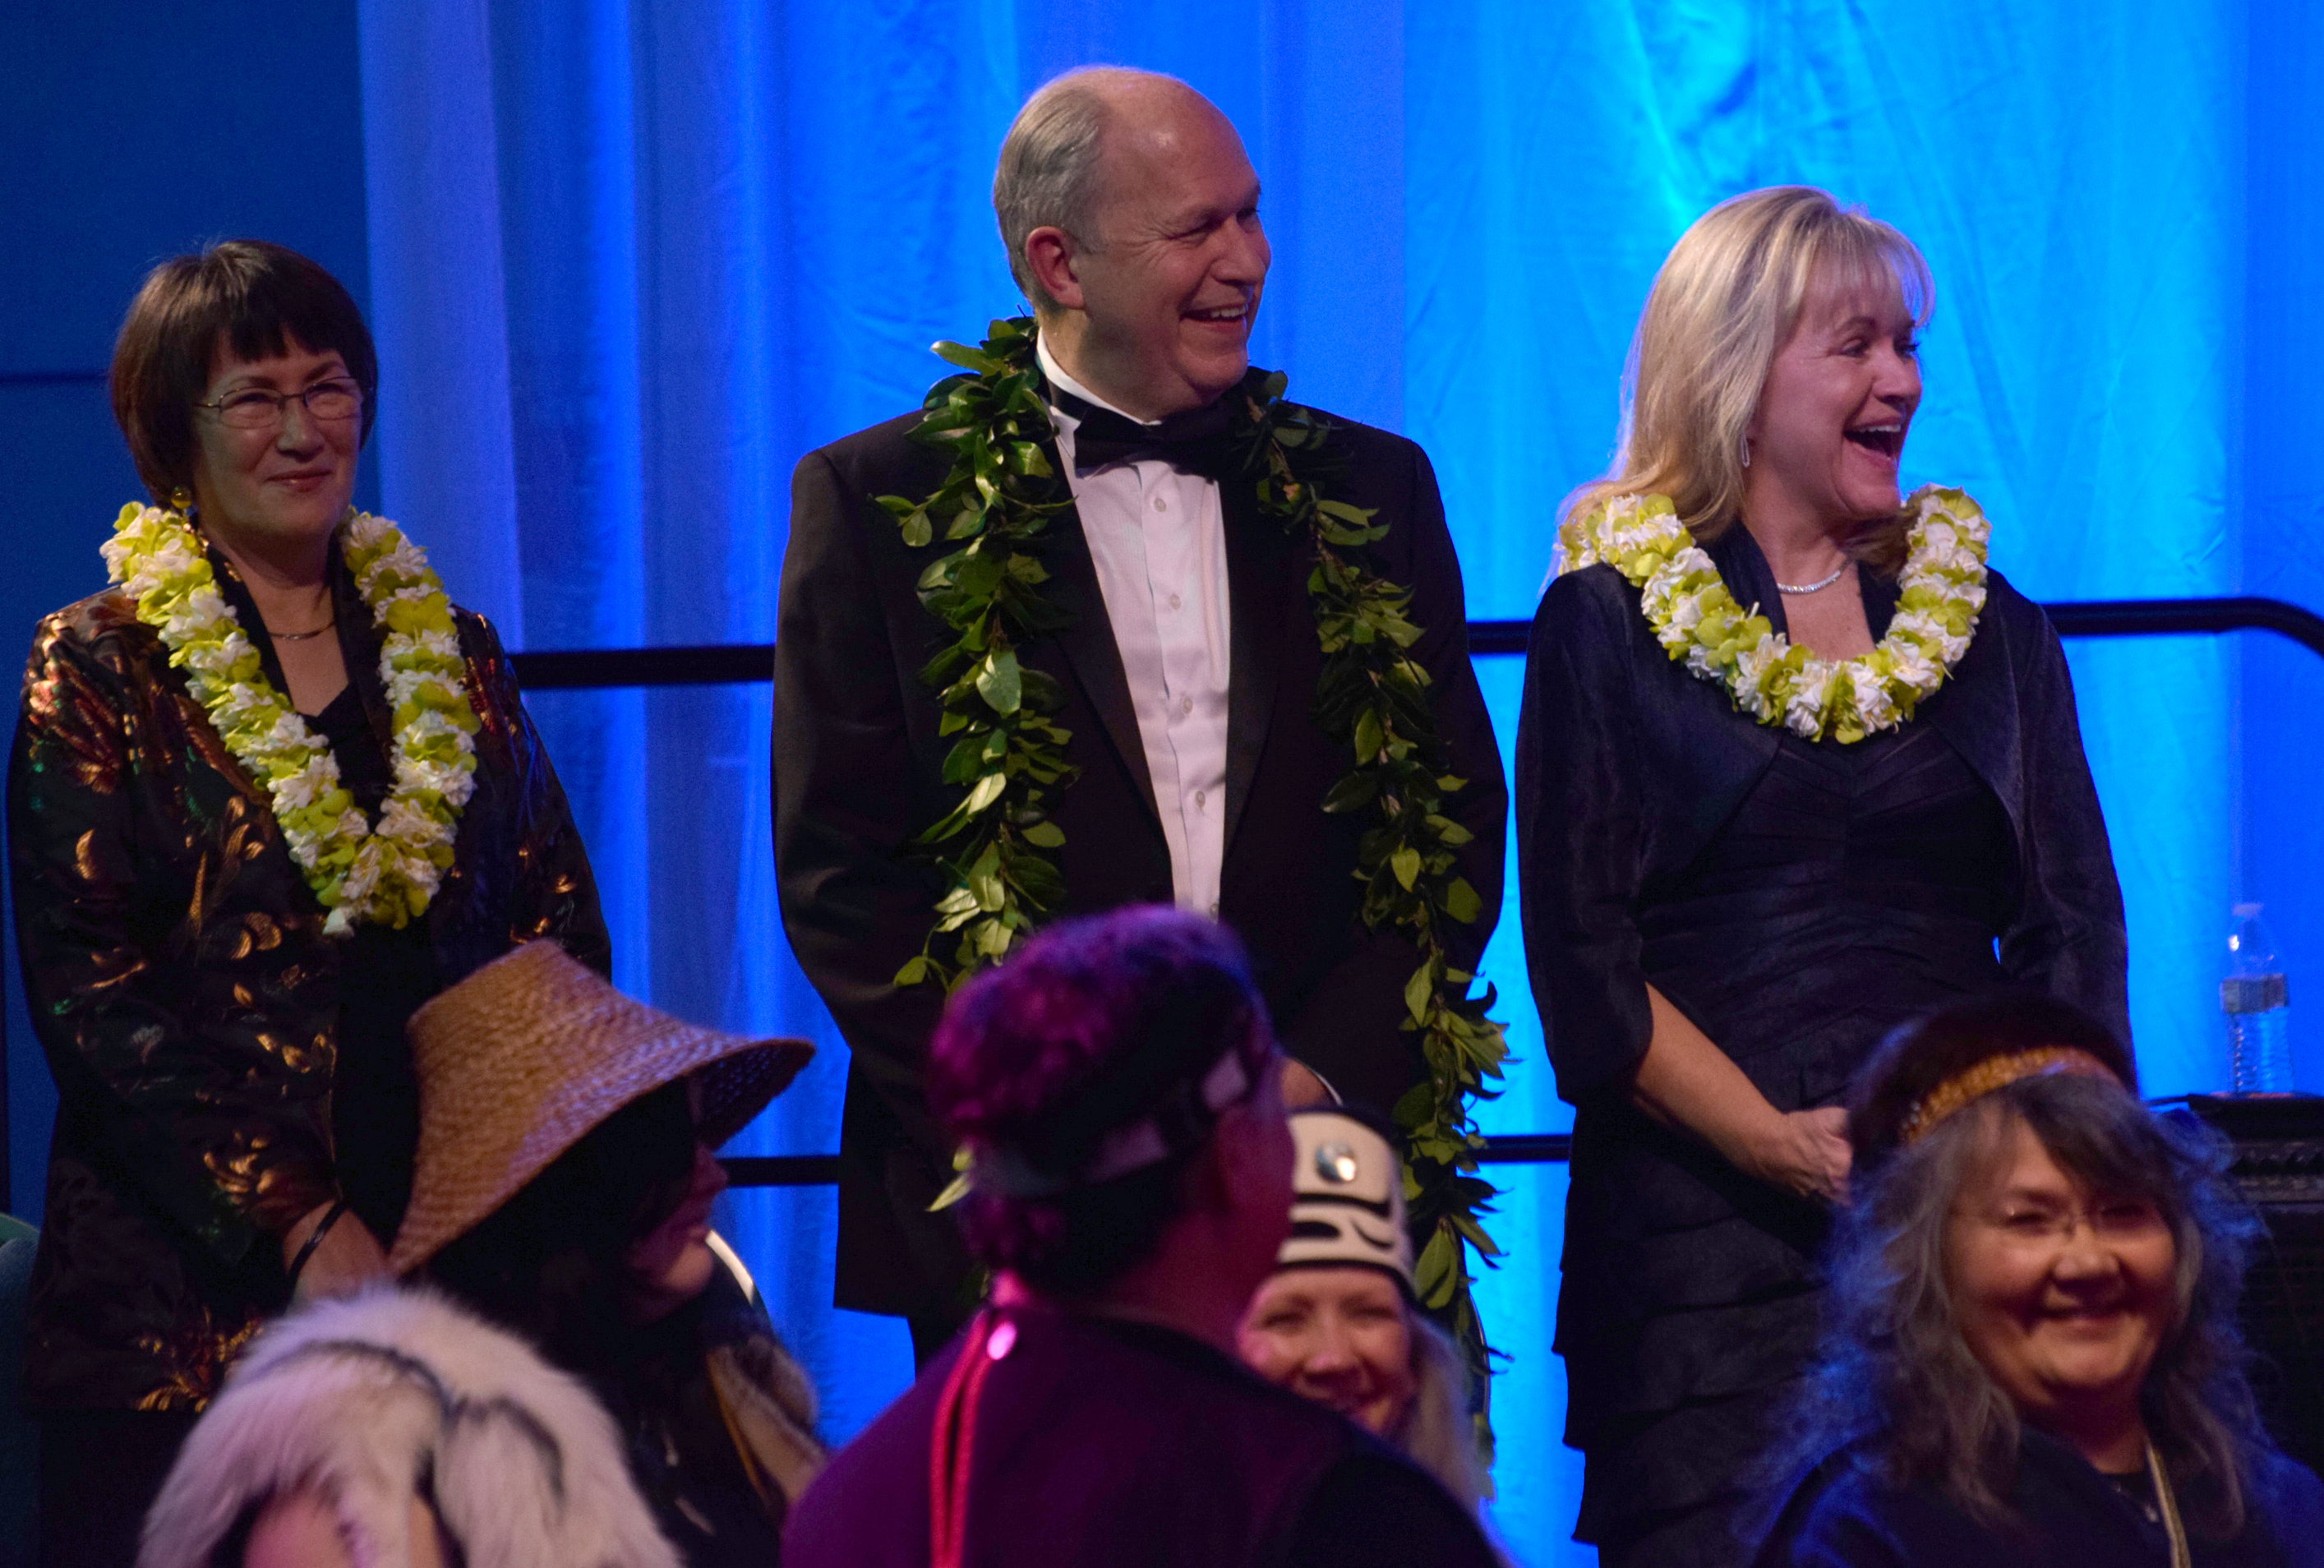 Toni Mallott, Gov. Bill Walker and First Lady Donna Walker on stage during the Inaugural Gala. (Photo by Skip Gray/KTOO)